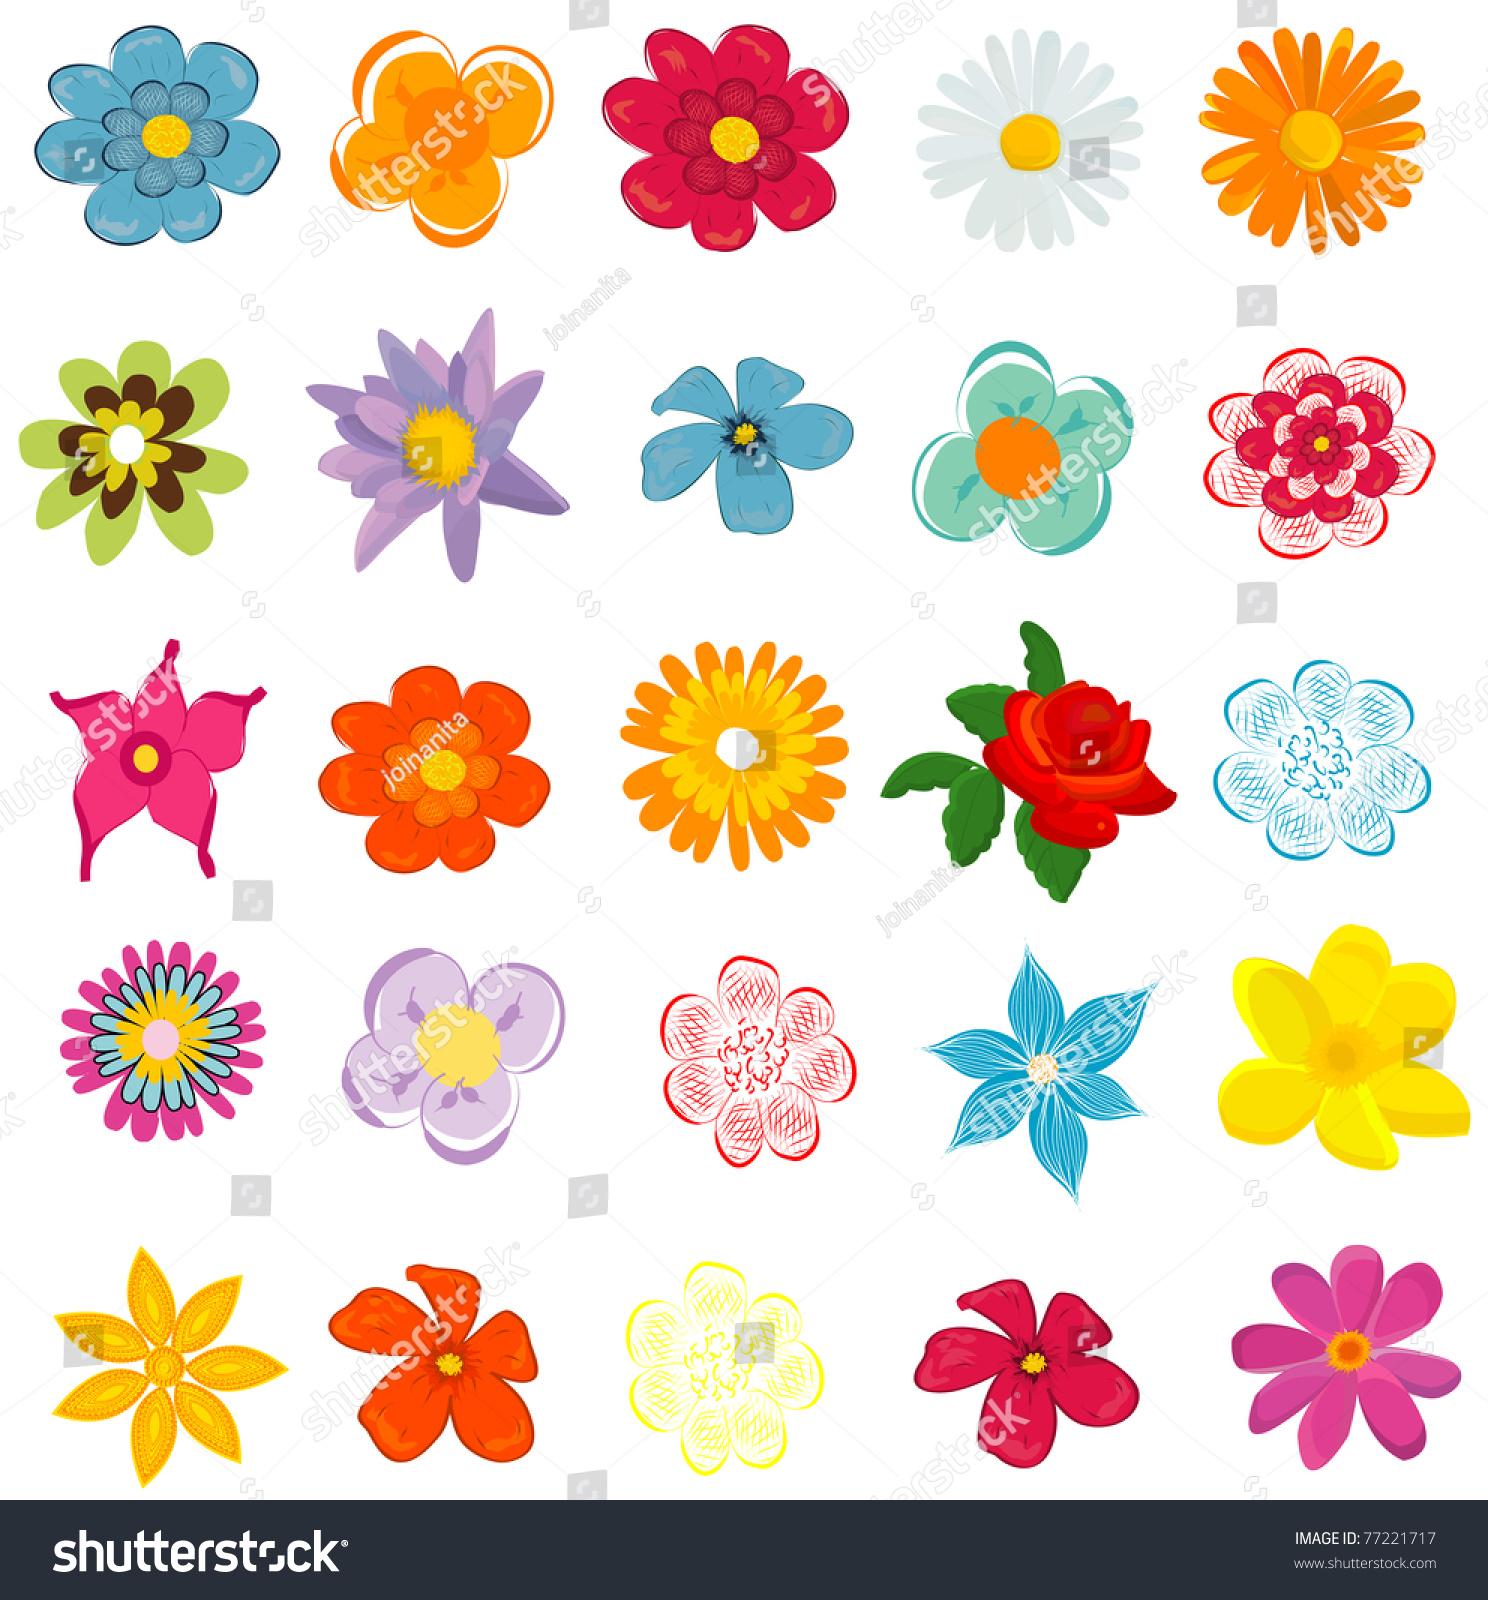 Colorful Spring Flowers Vector Illustration Stock Vector Royalty